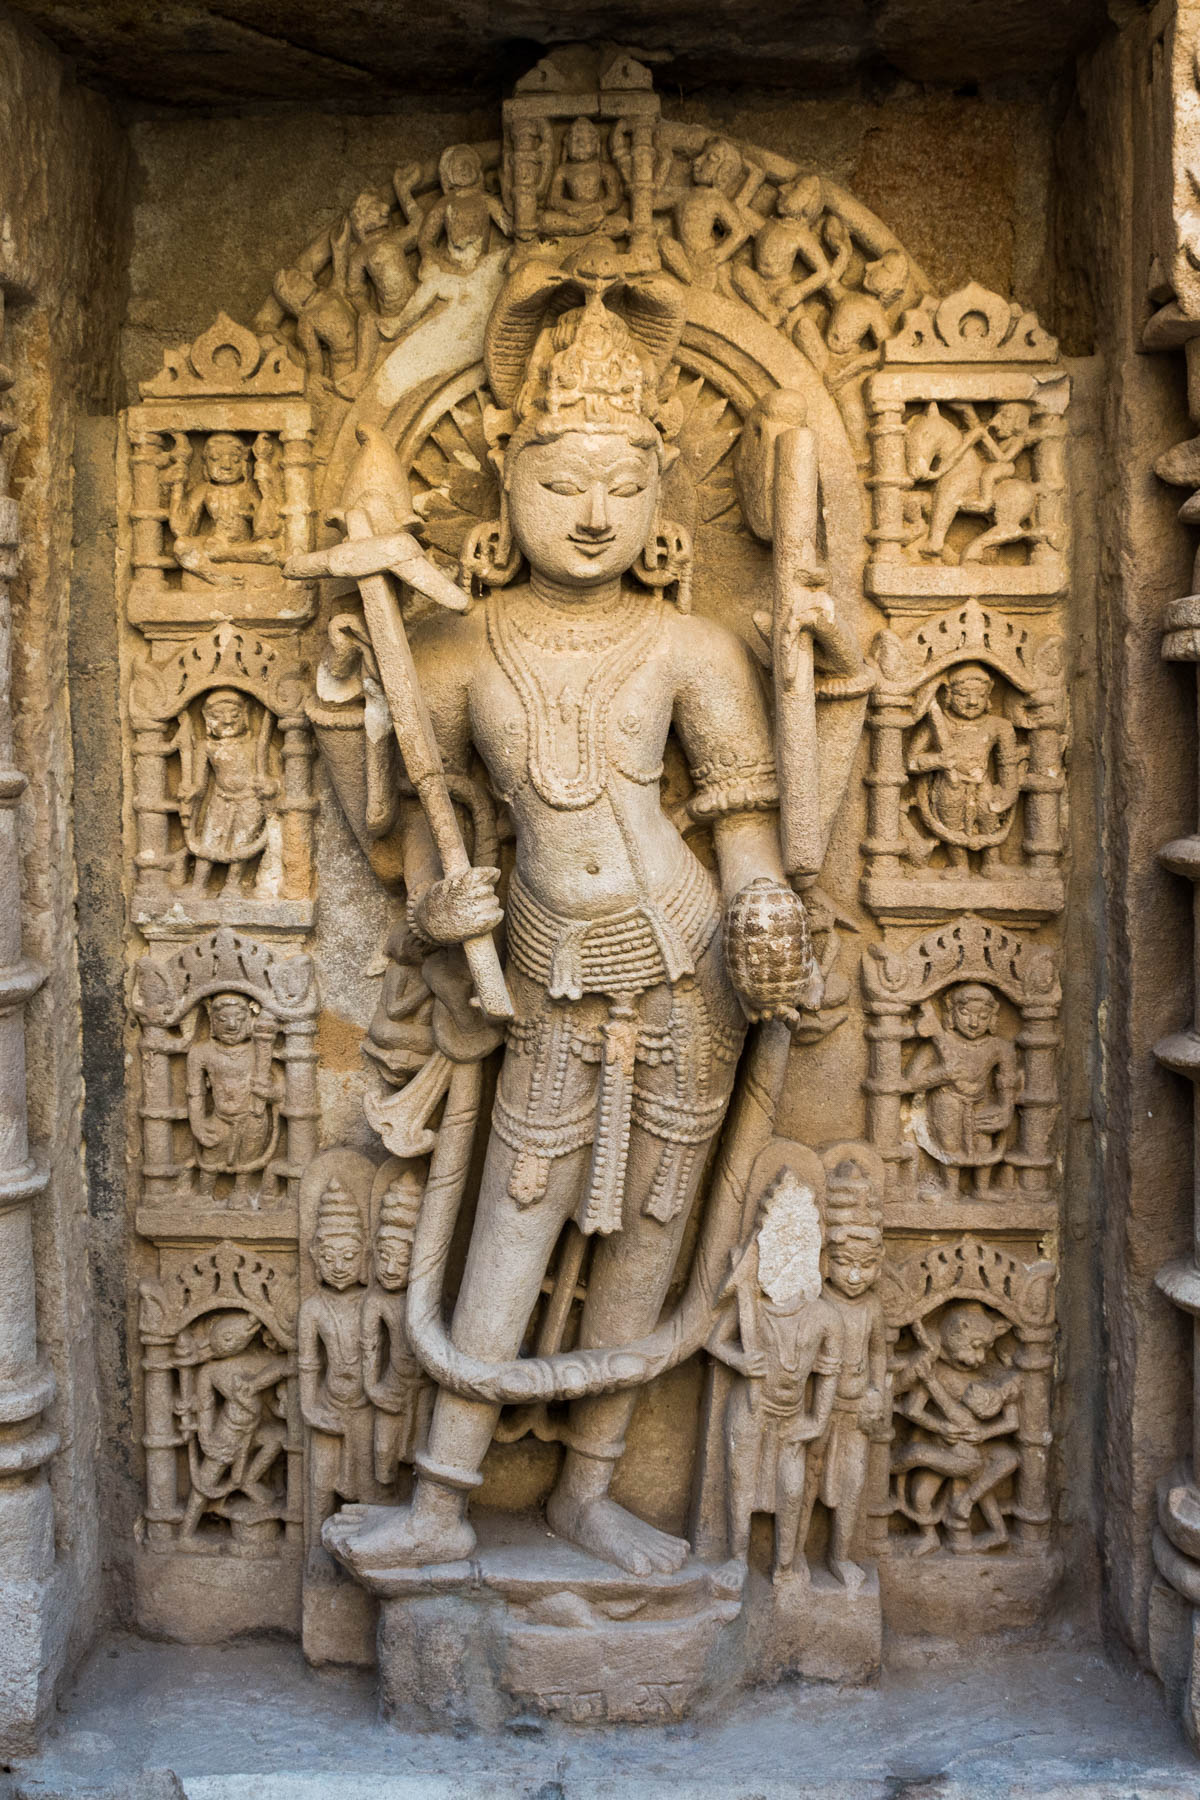 A history of Patan Patola - A statue of Lord Vishnu in Rani Ki Vav stepwell in Patan, Gujarat, India - Lost With Purpose